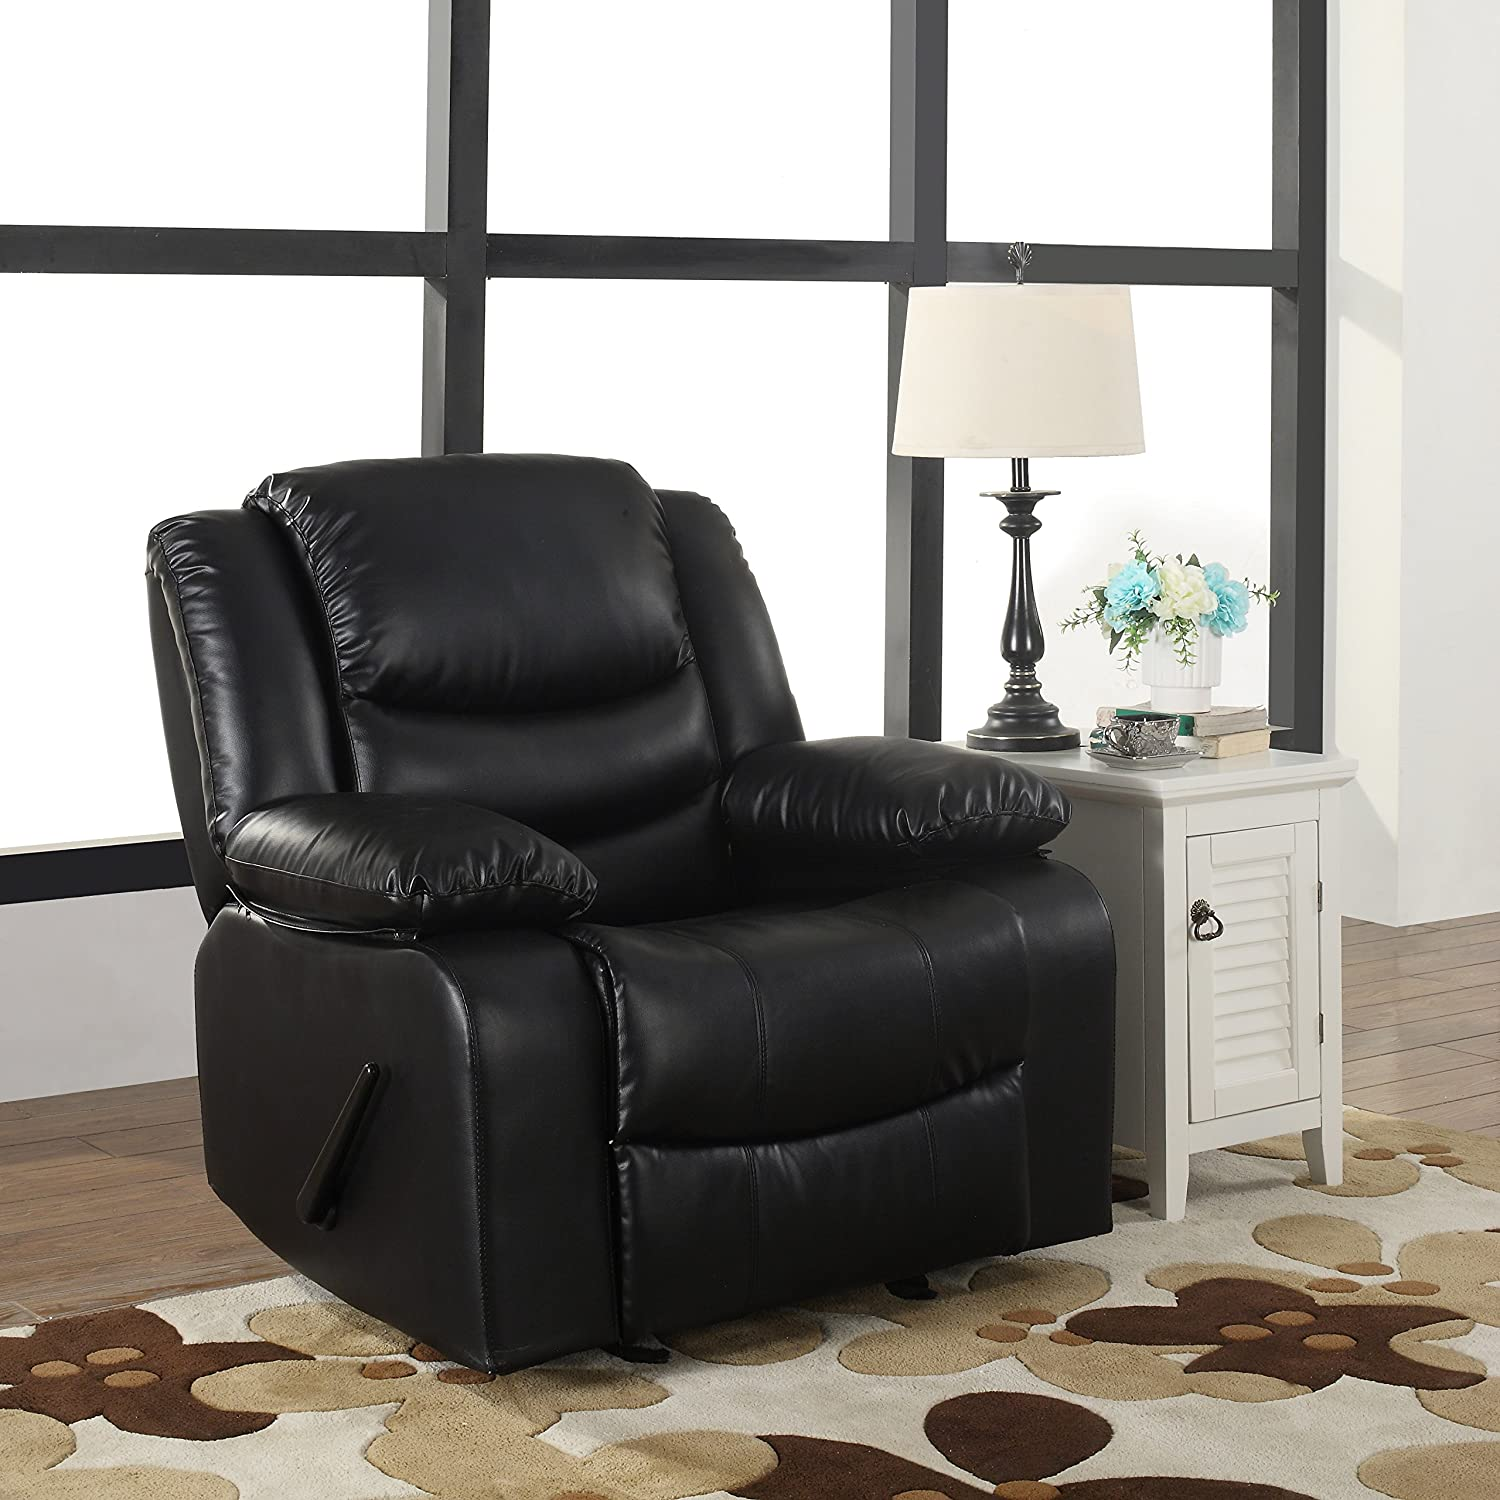 amazoncom bonded leather rocker recliner living room chair black brown black kitchen u0026 dining